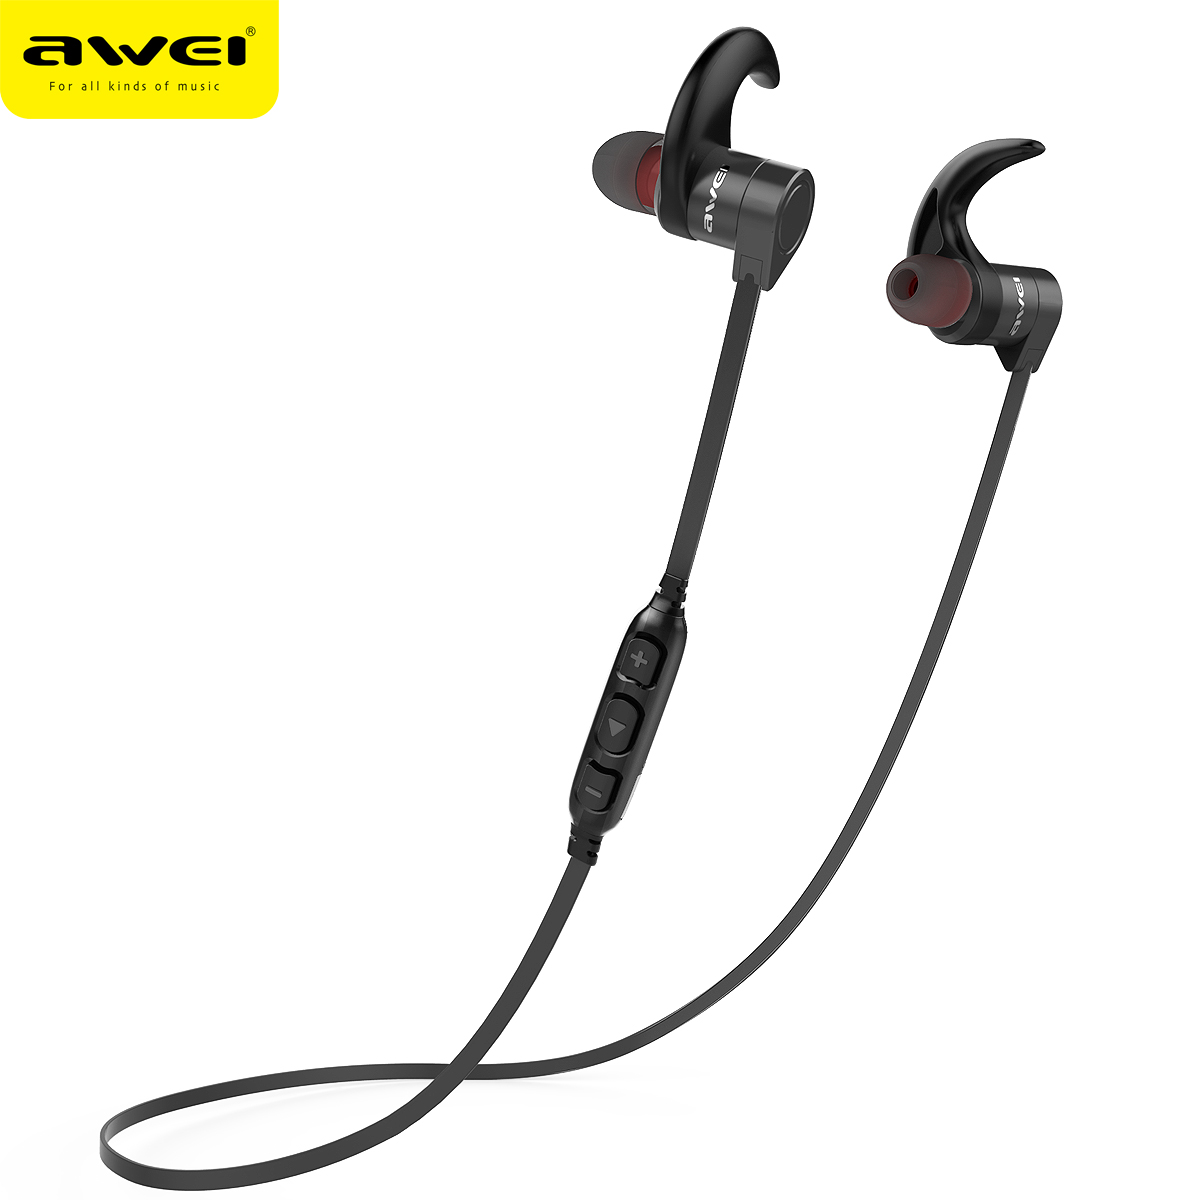 AWEI AK3 Wireless Earphone Bluetooth Headphones Megnetic Headset Blutooth Earphone Cordless Earbuds Earpiece Casque kulakl k awei t1 wireless bluetooth earbuds black